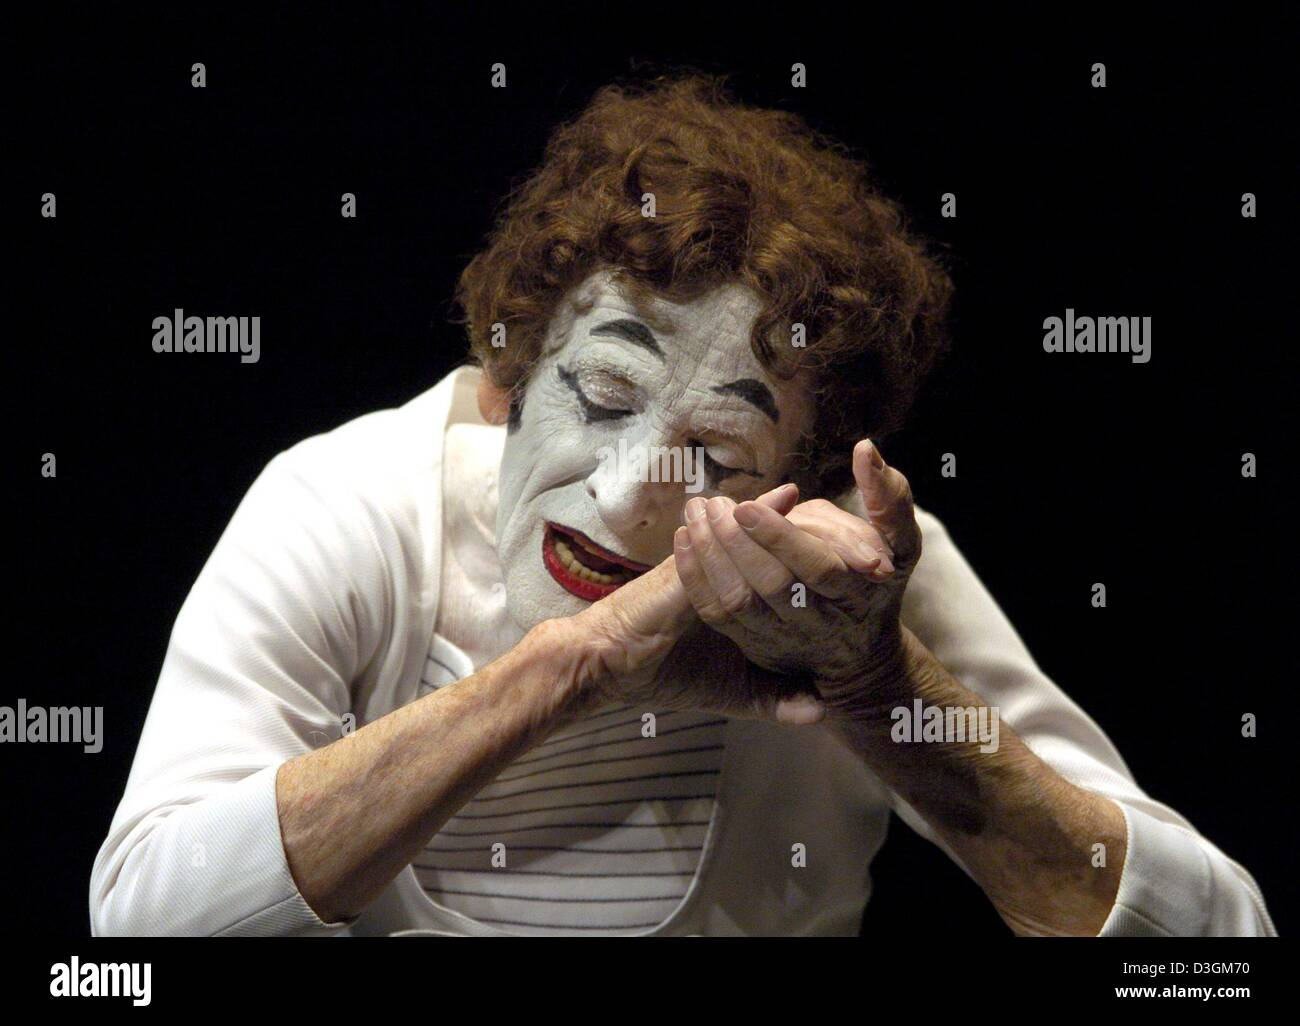 (dpa) - French pantomime Marcel Marceau performs on stage during the start of his tour of Germany at the Thalia Stock Photo